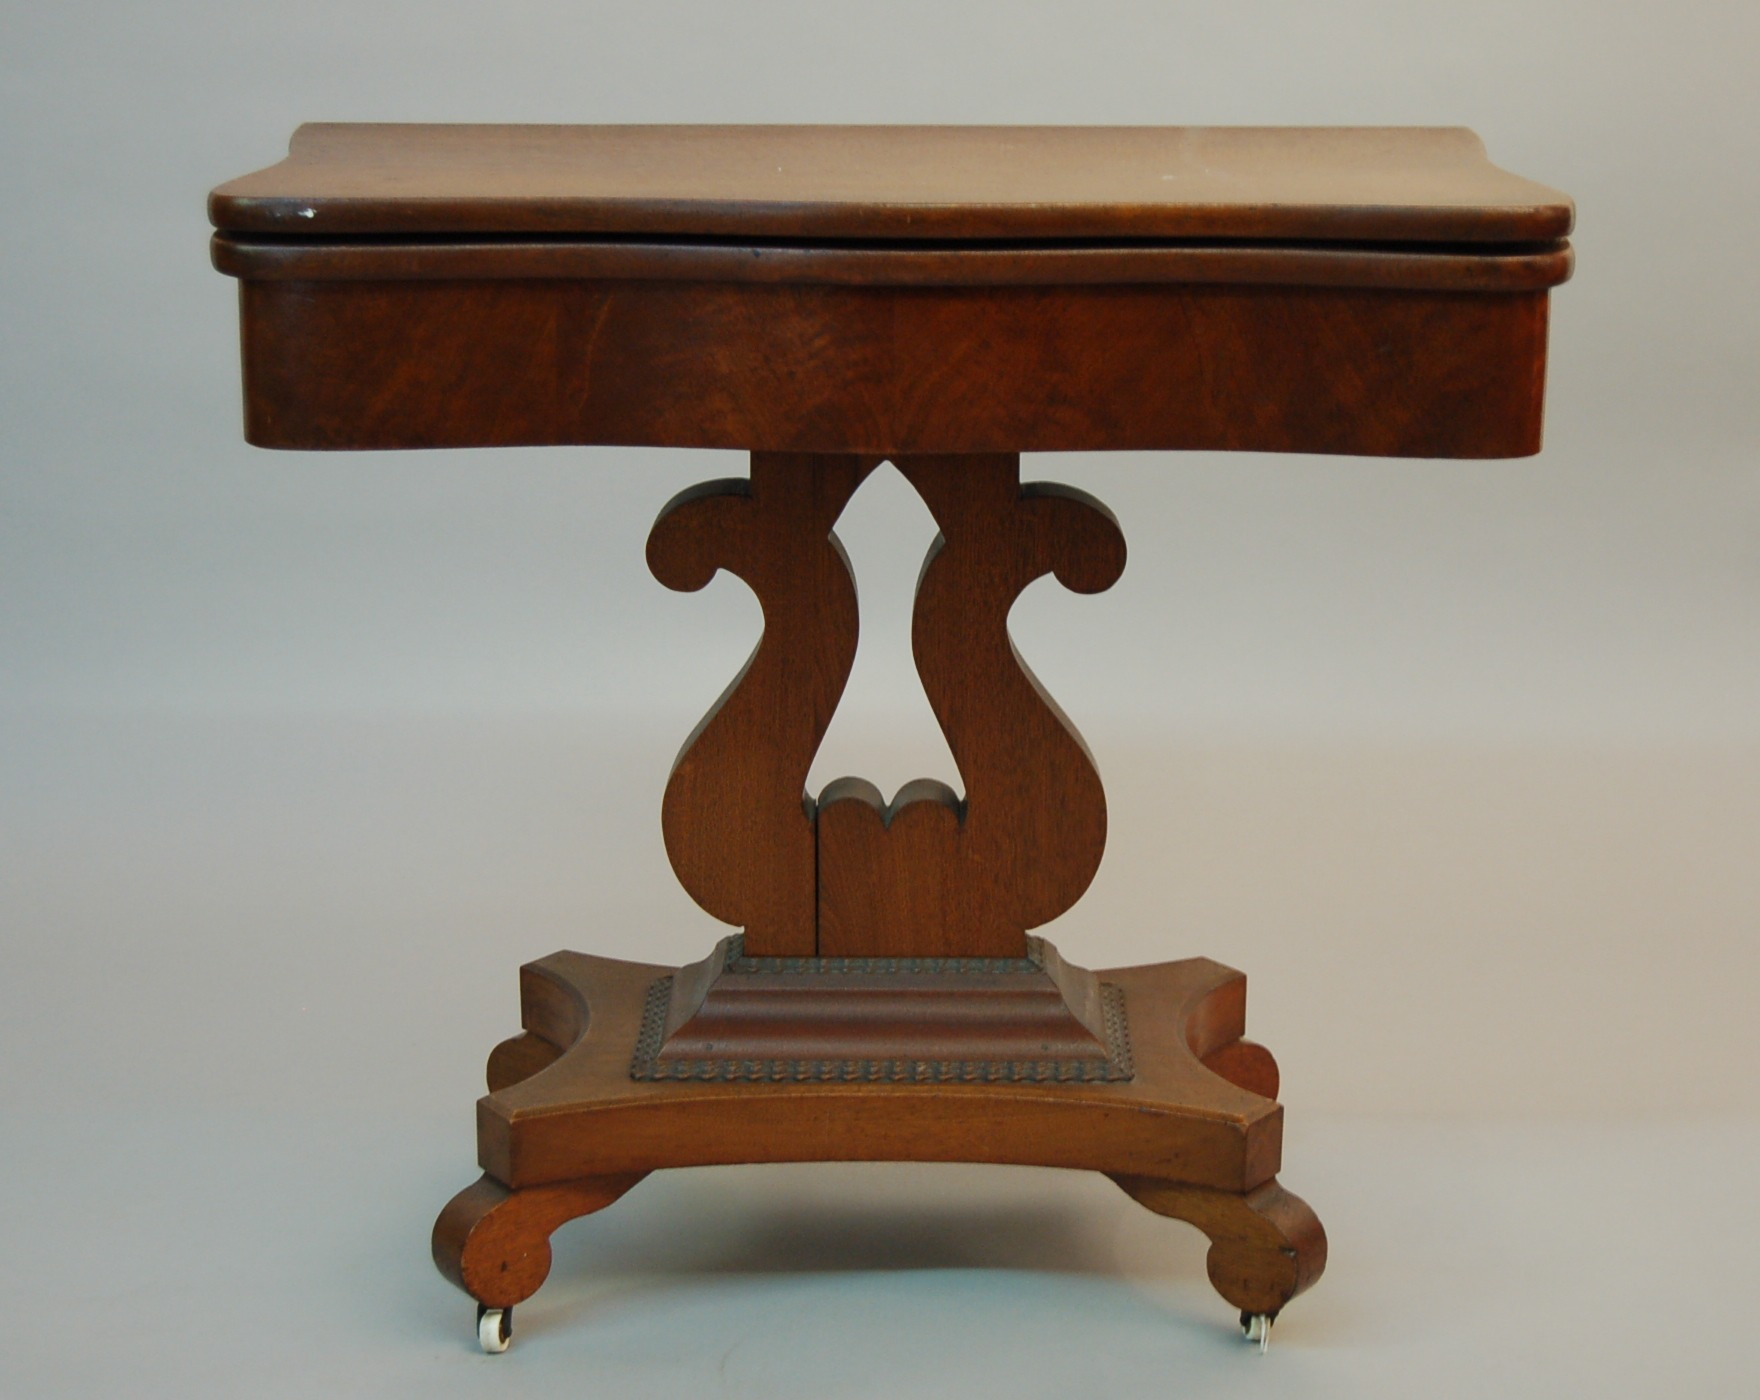 High Quality A Walnut Flip Top Games Table Or Tea Table, Ca. 19th Century